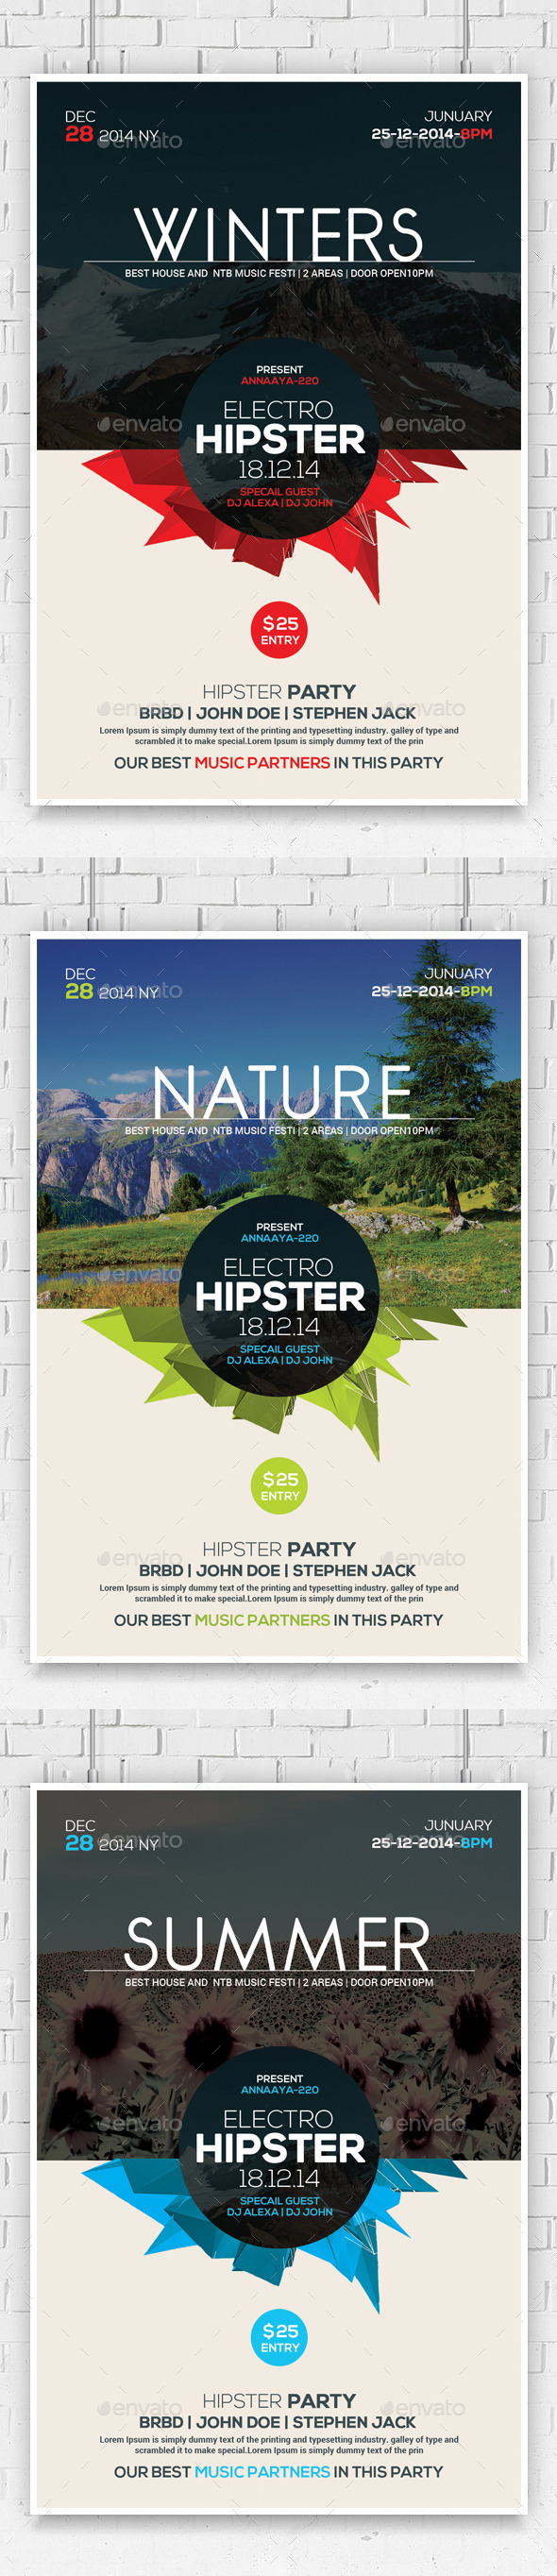 Hipster Party Flyer Template - Clubs & Parties Events